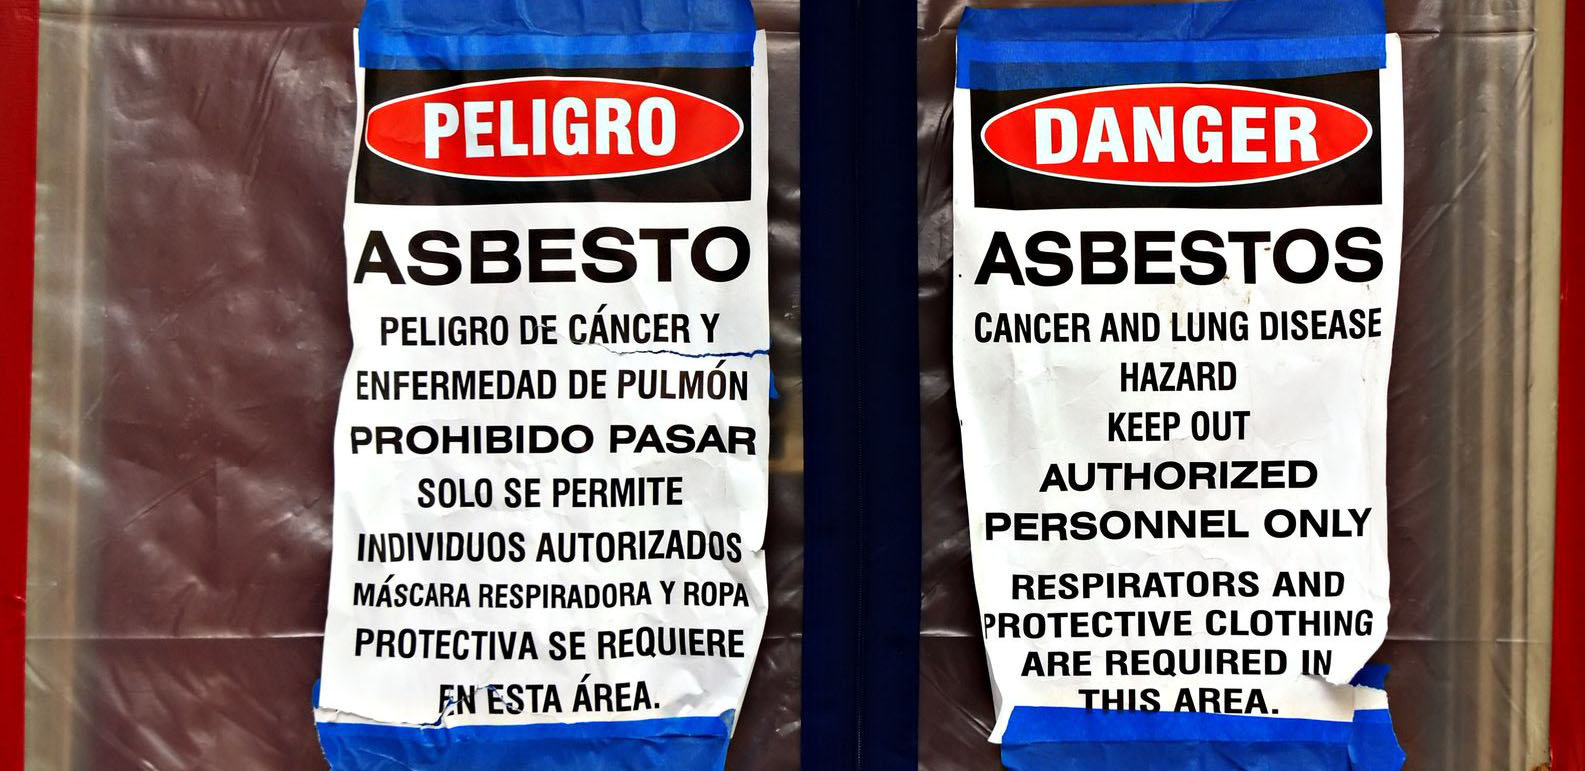 Asbestosis-What is it really? - Asbestos Abatement Services